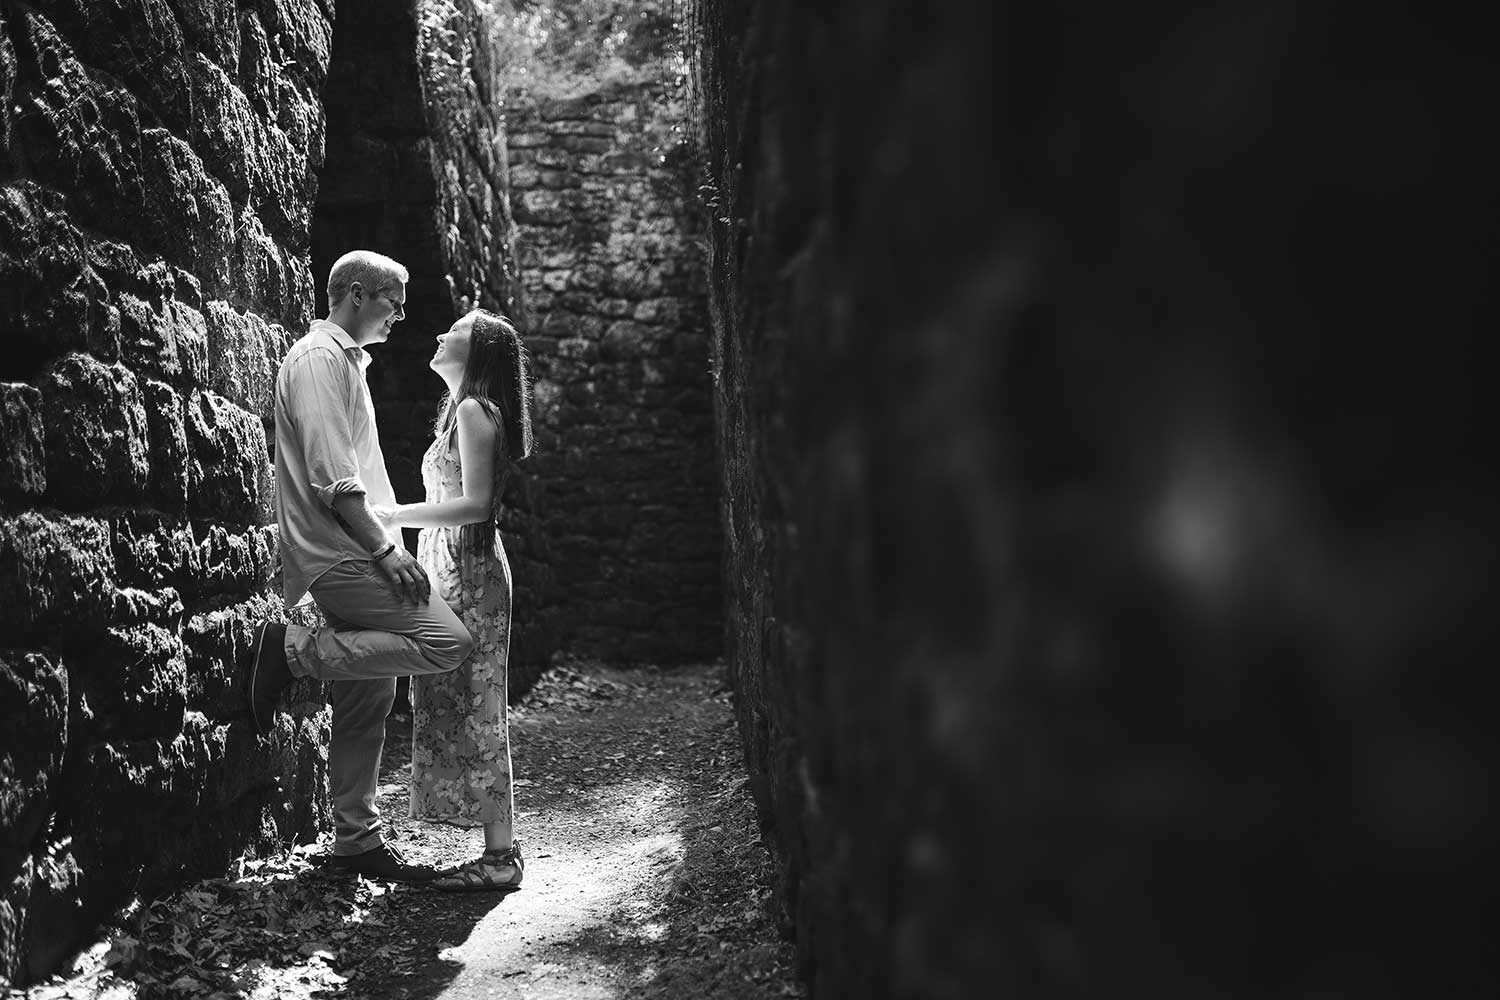 Hopewell Furnace Couples Portraits with couple being backlit by bright sunlight in a stone hallway